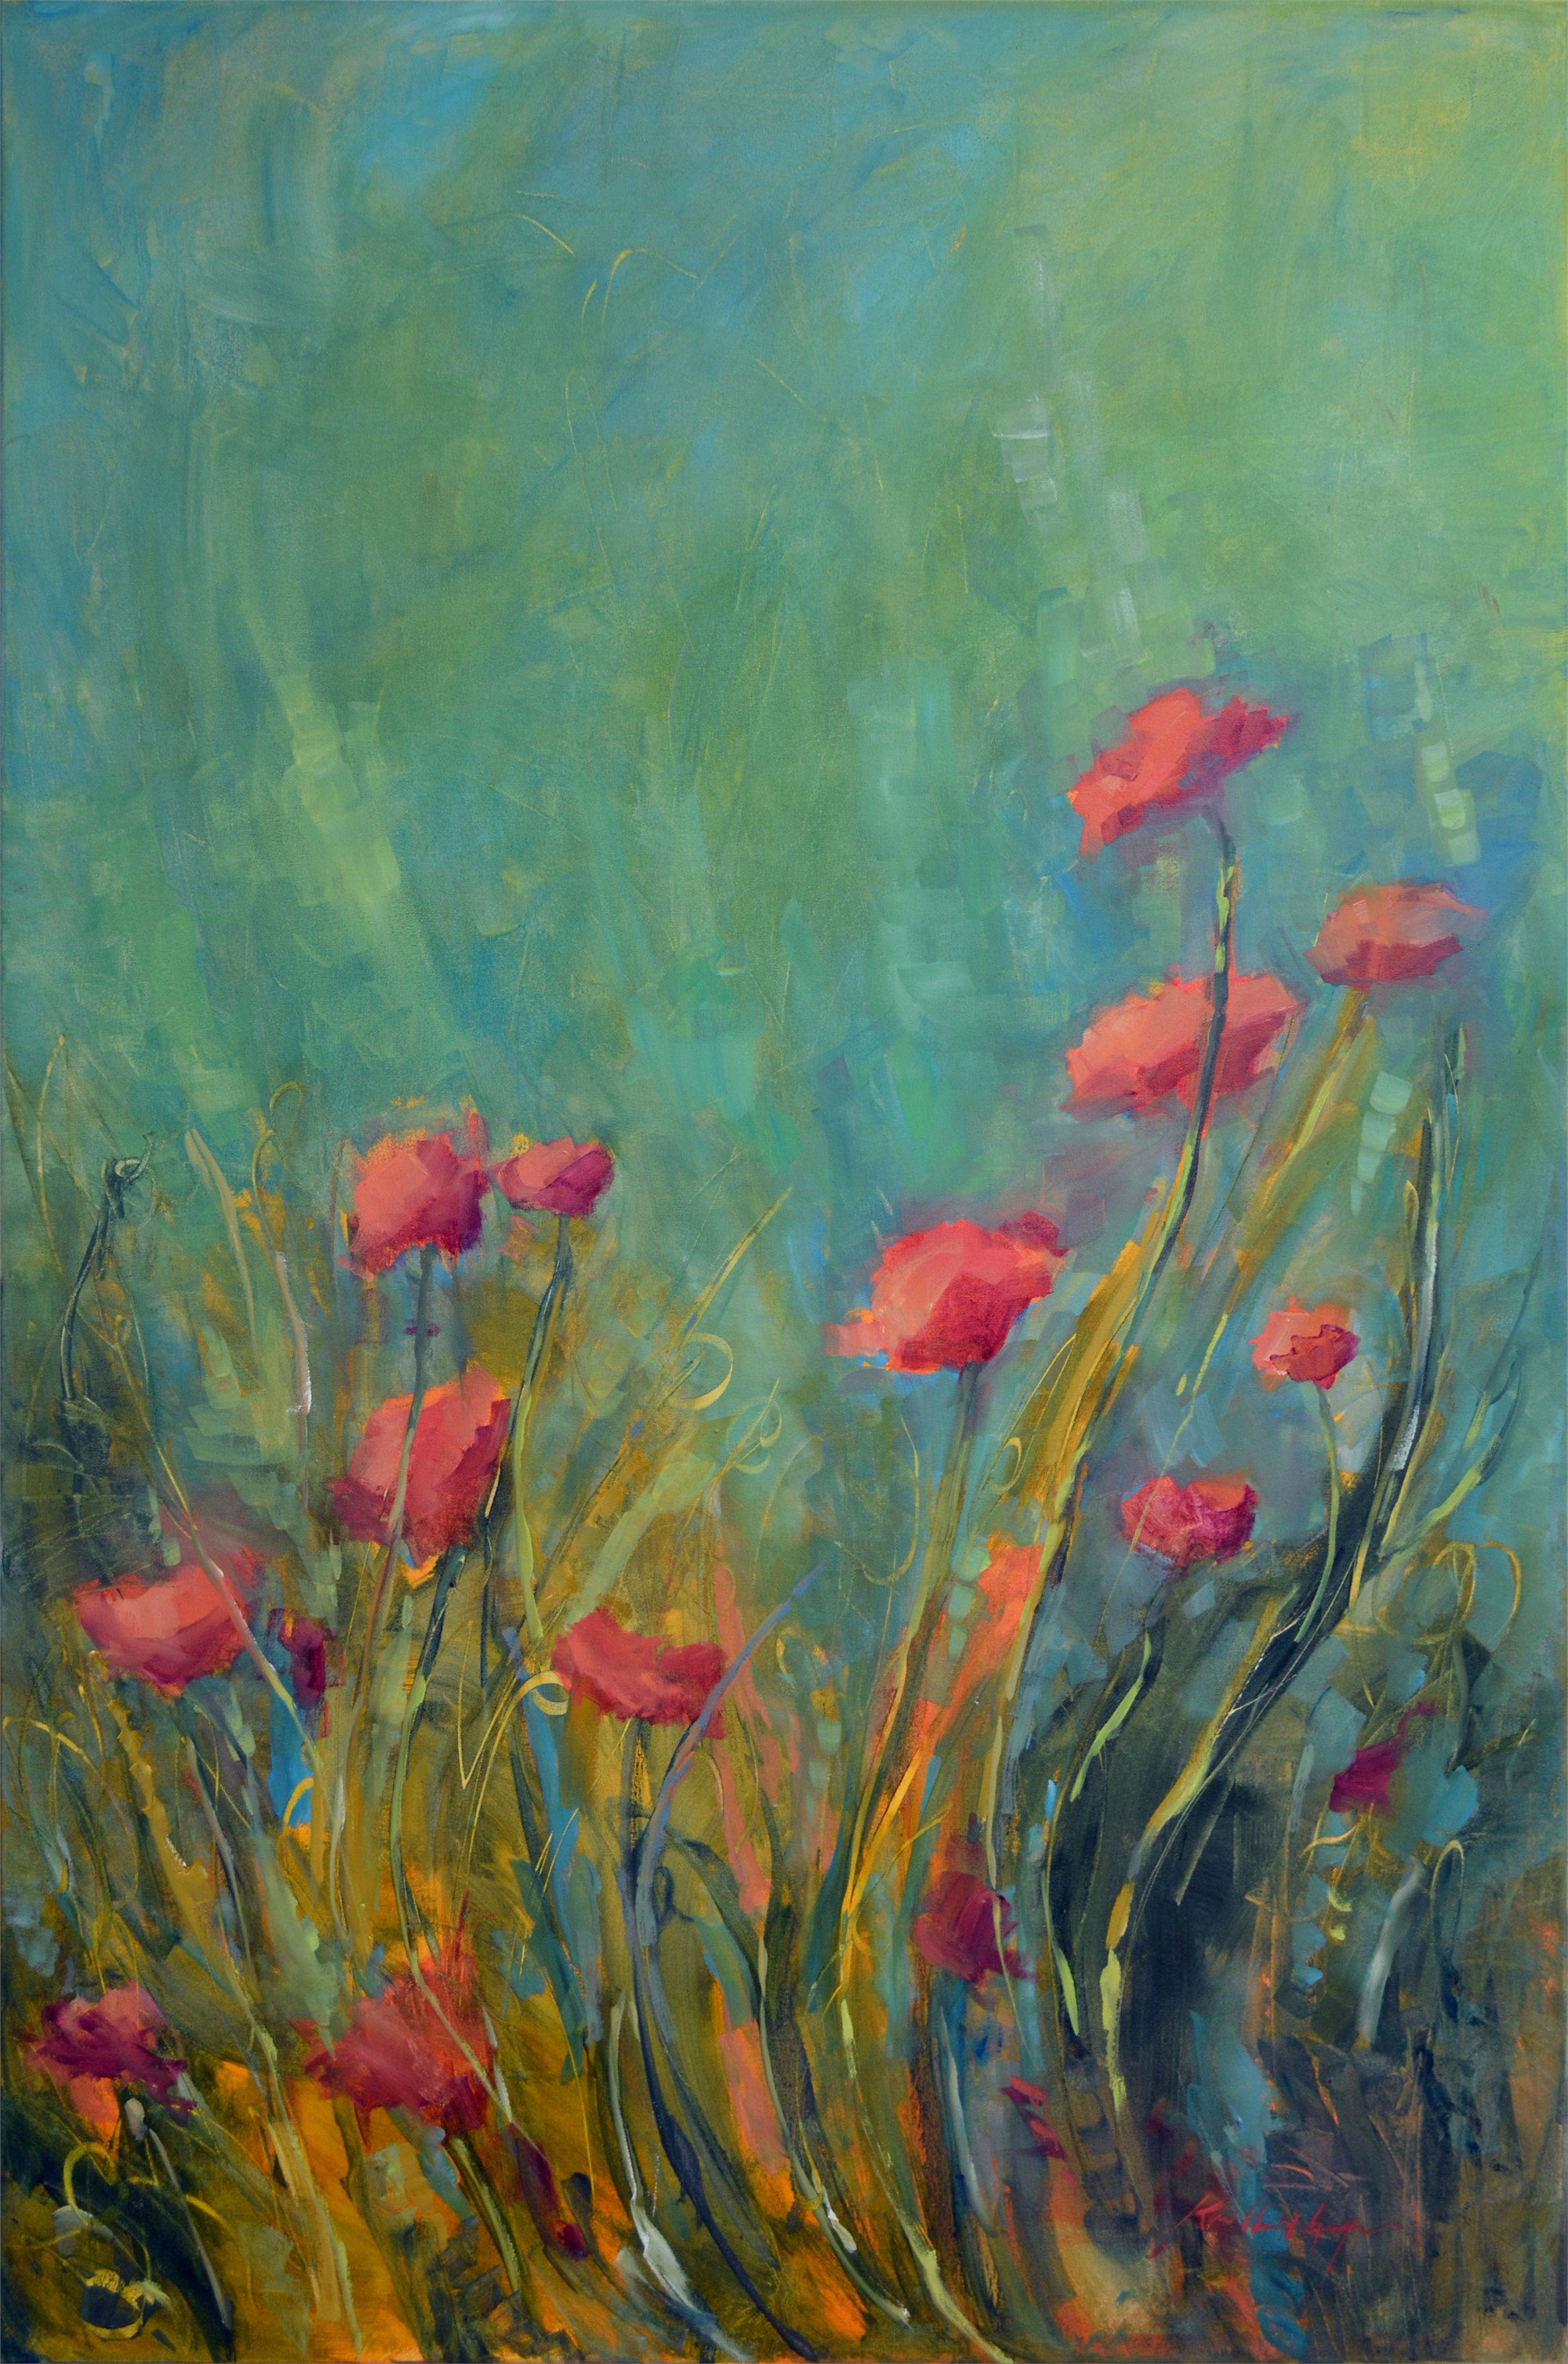 Dance of the Poppies by Karen Hewitt Hagan